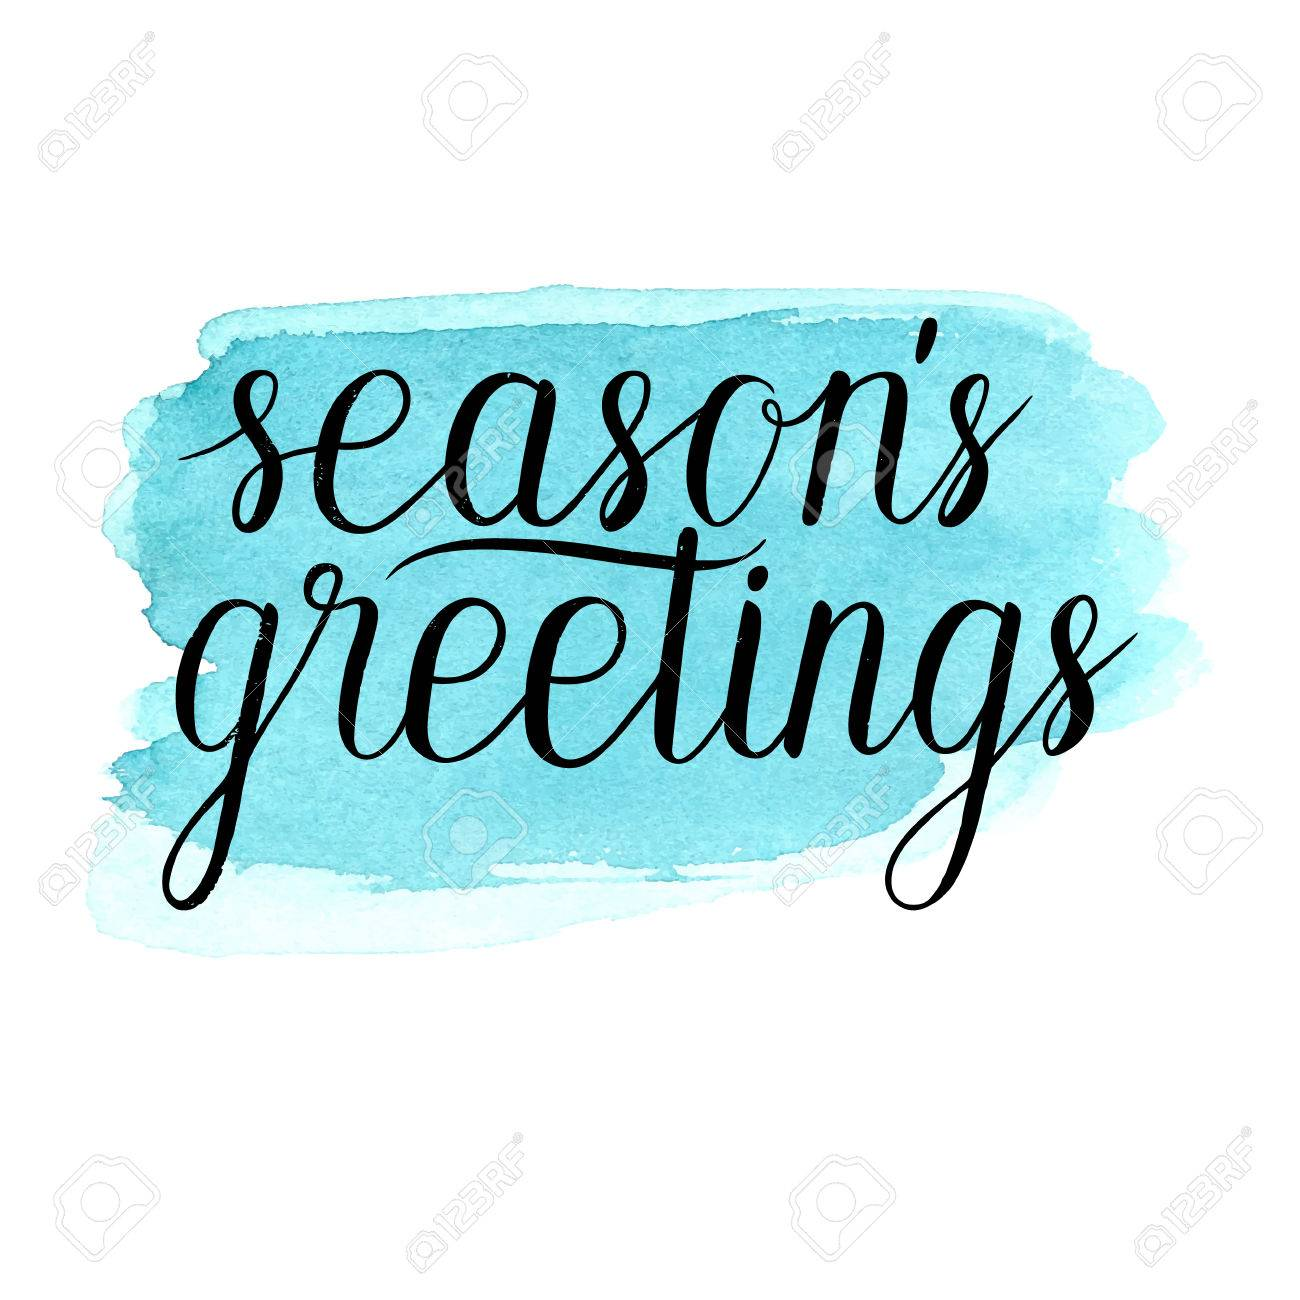 Seasons greetings card poster vector winter holidays background seasons greetings card poster vector winter holidays background with hand lettering hand drawn m4hsunfo